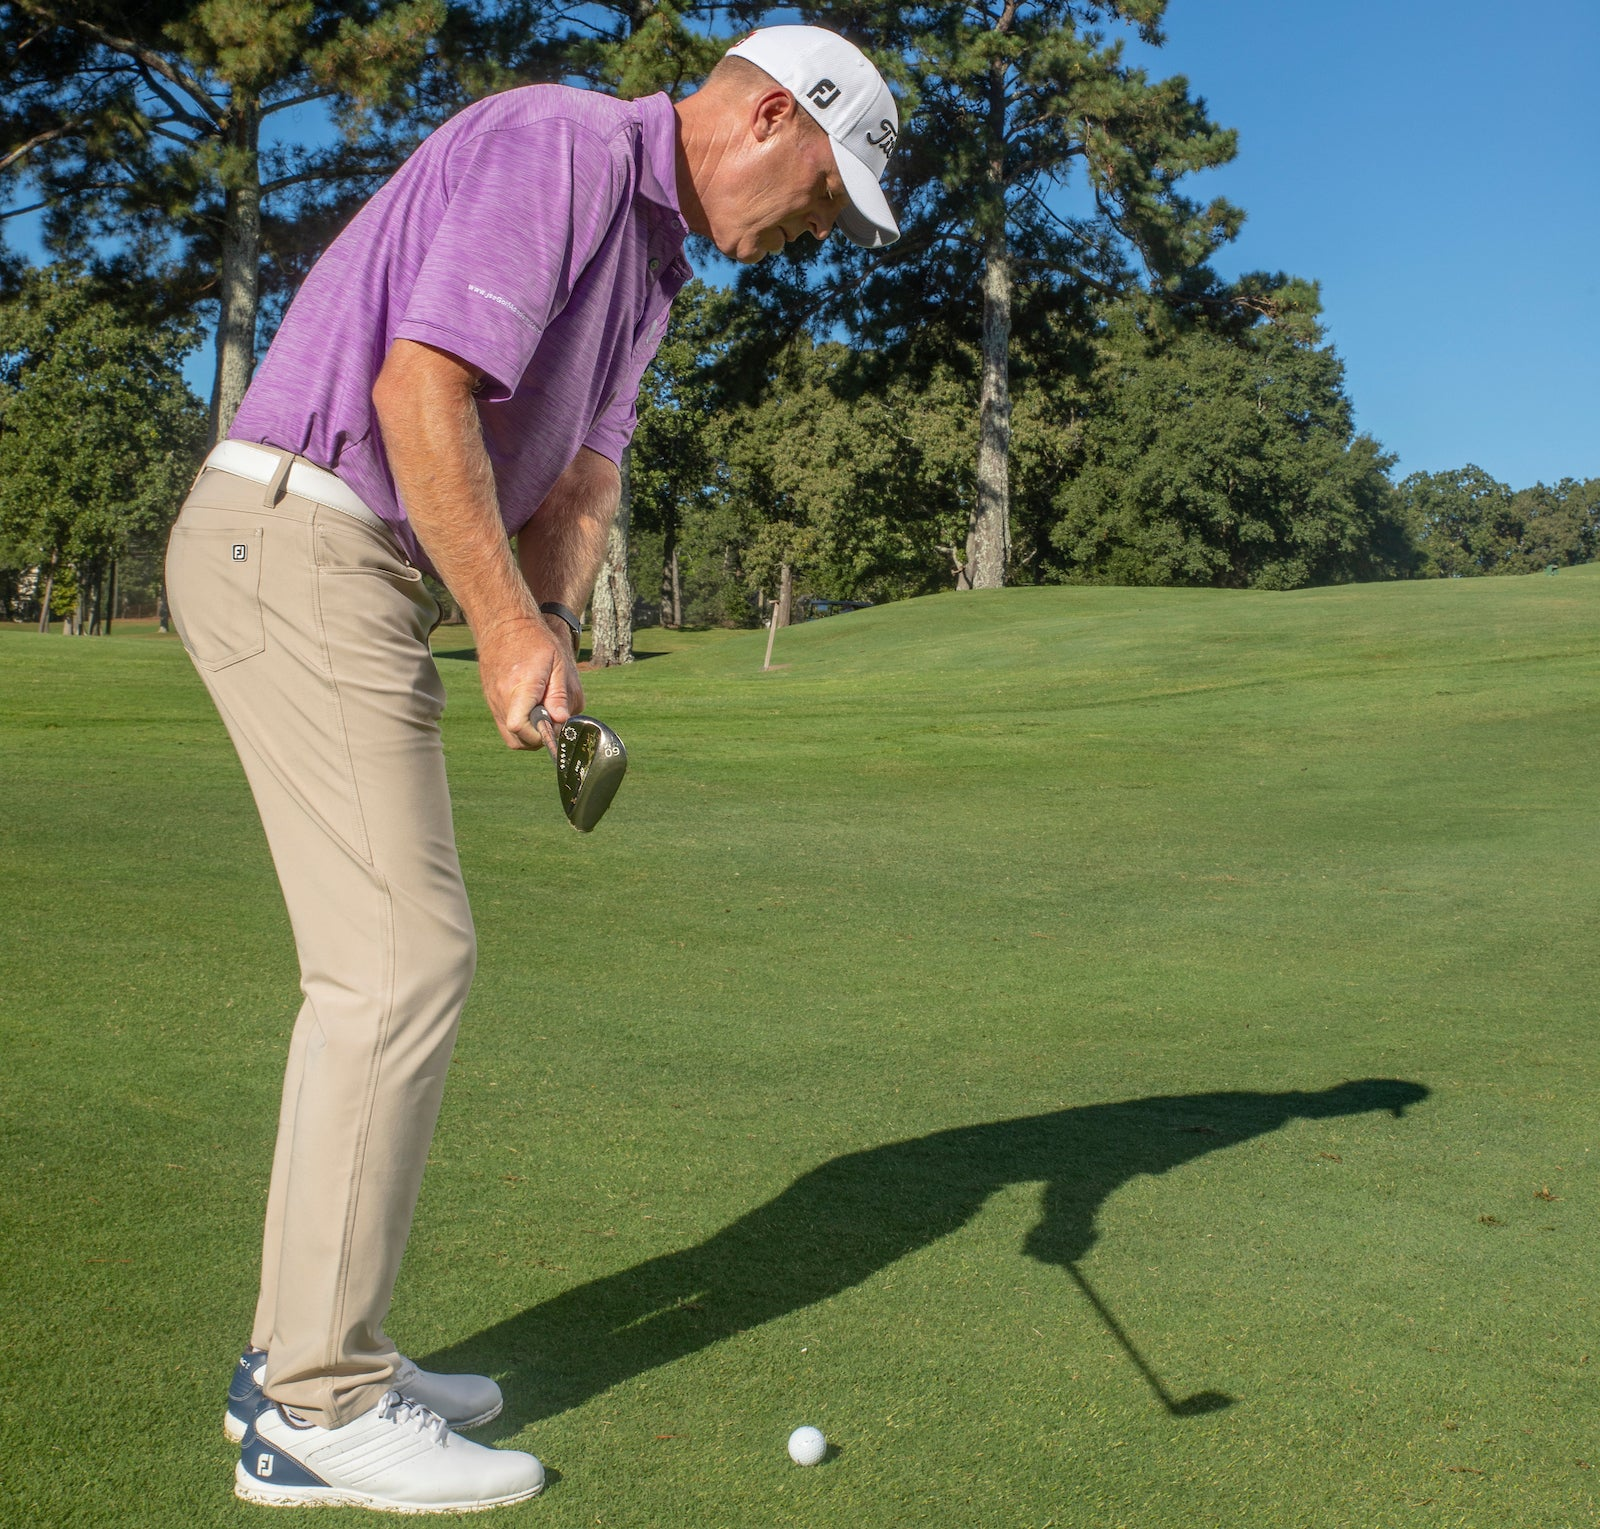 Short game golf tip: James Seickmann demonstrates an open stance